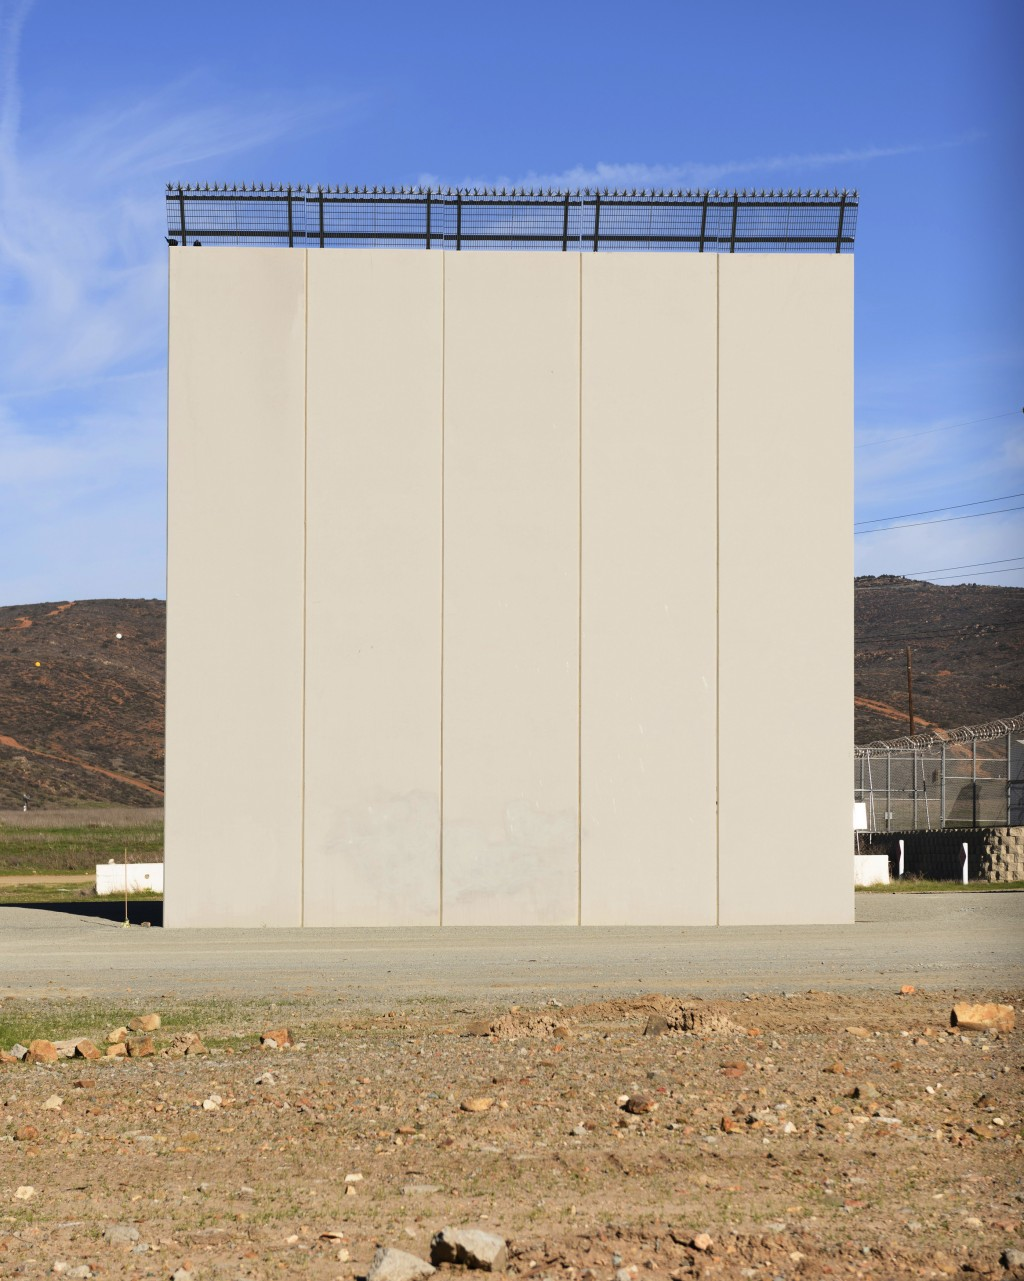 A border wall prototype stands in San Diego near the Mexico-U.S. border, seen from Tijuana, Mexico, Saturday, Dec. 22, 2018. (AP Photo/Daniel Ochoa de